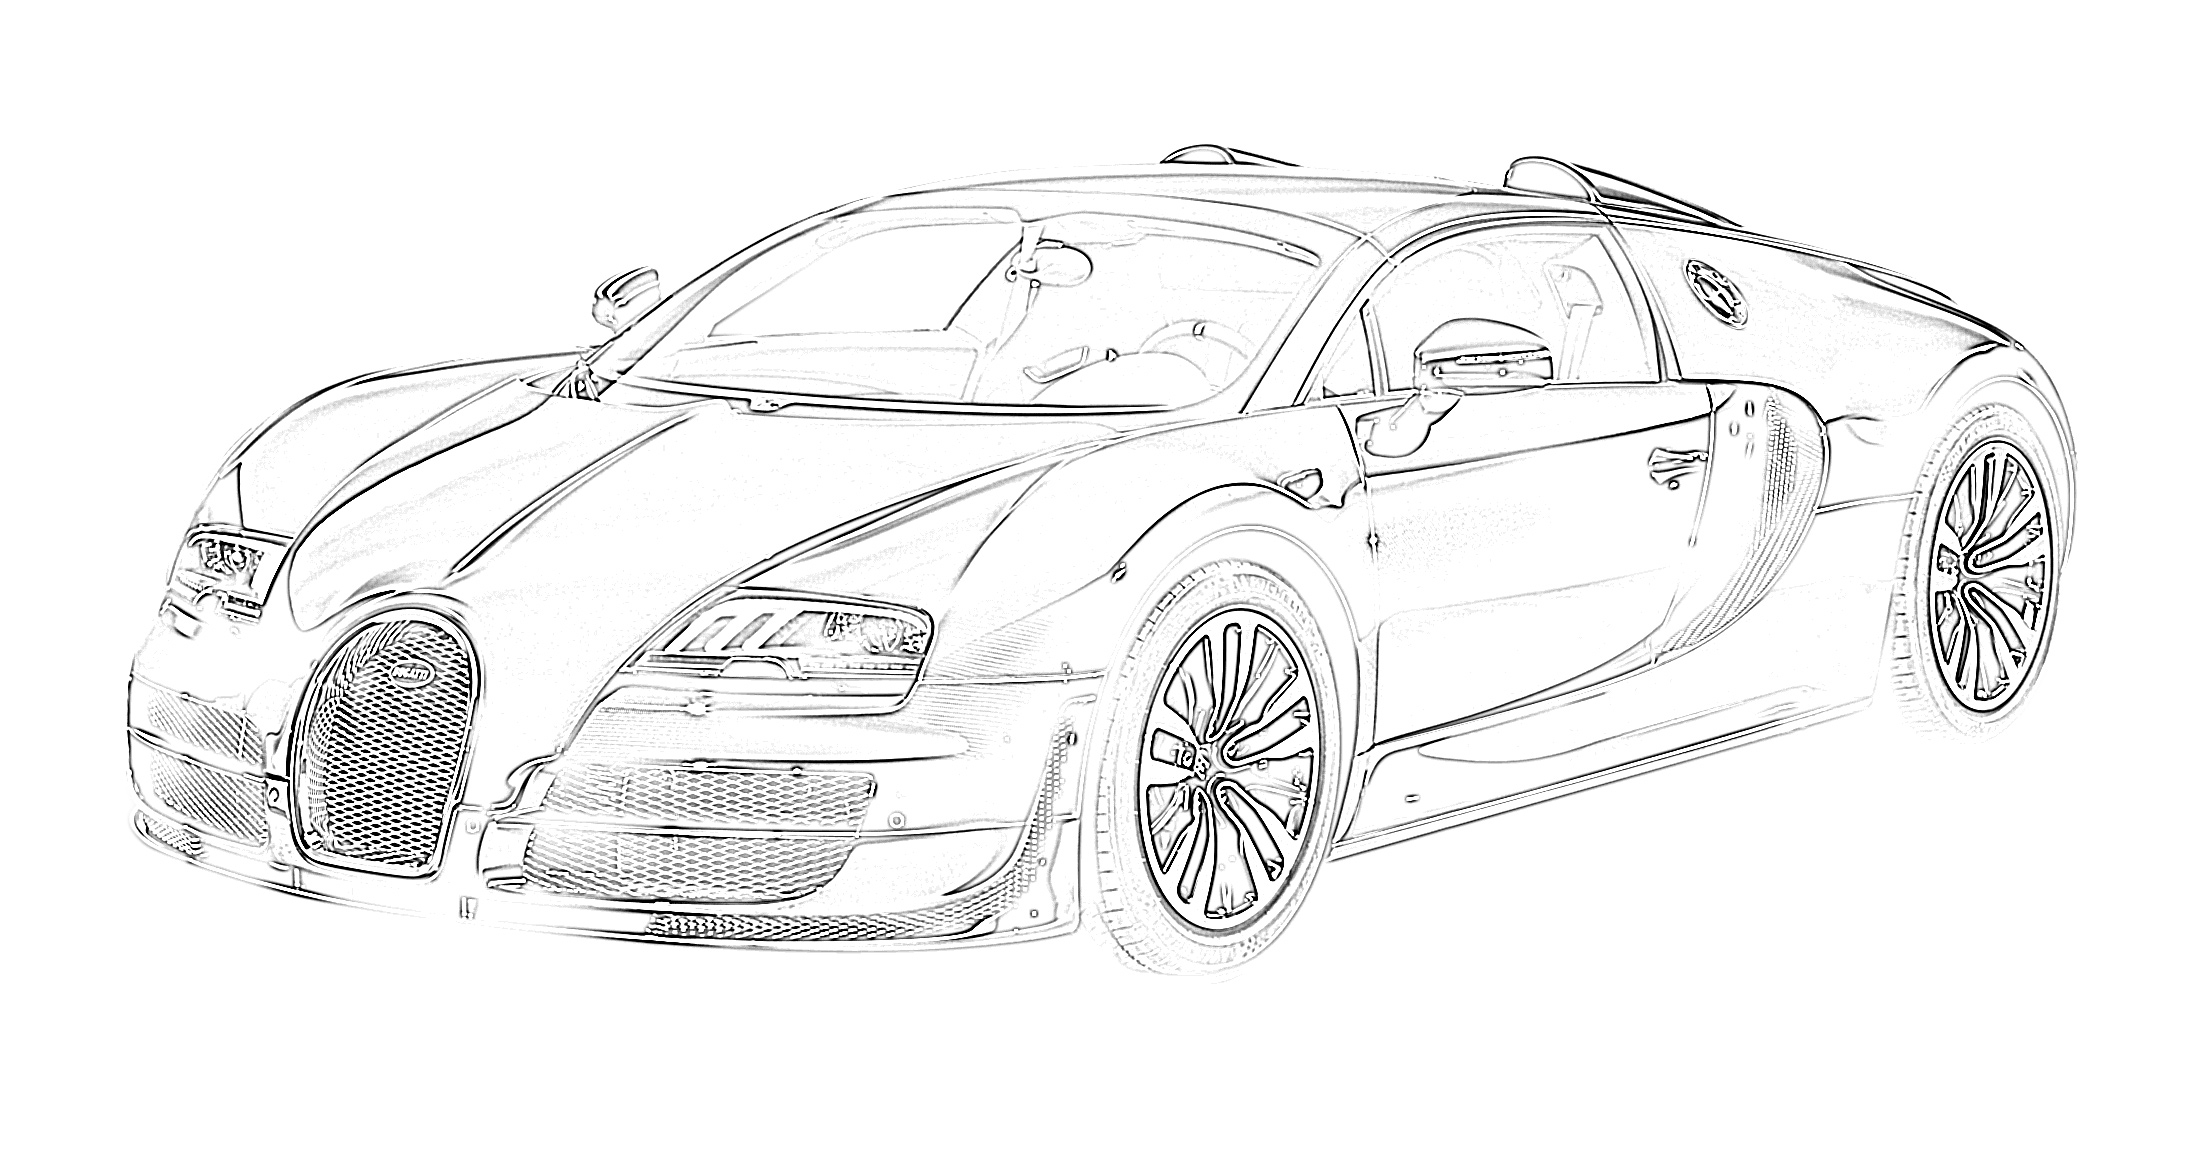 coloring cars pages 17 free sports car coloring pages for kids save print coloring cars pages